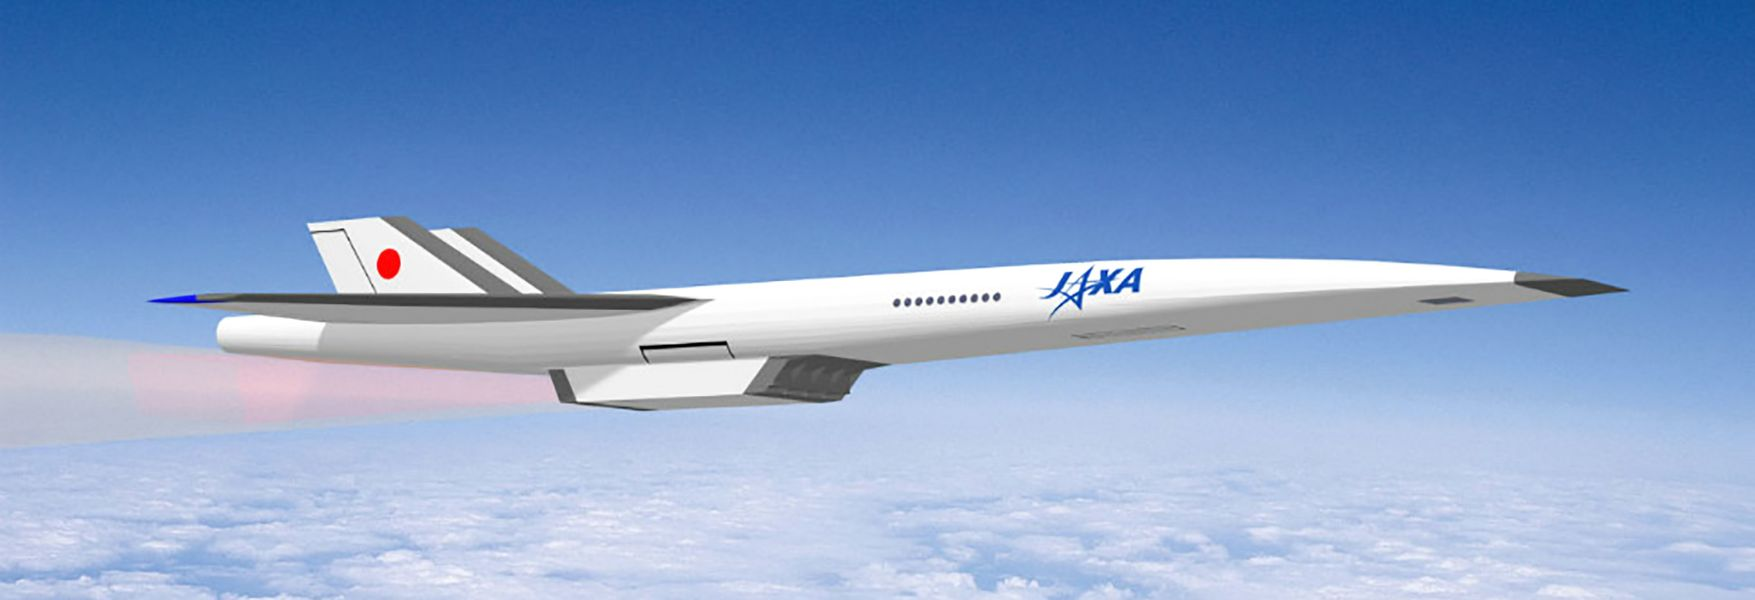 Hypersonic: The Future of Aviation - OpenMind